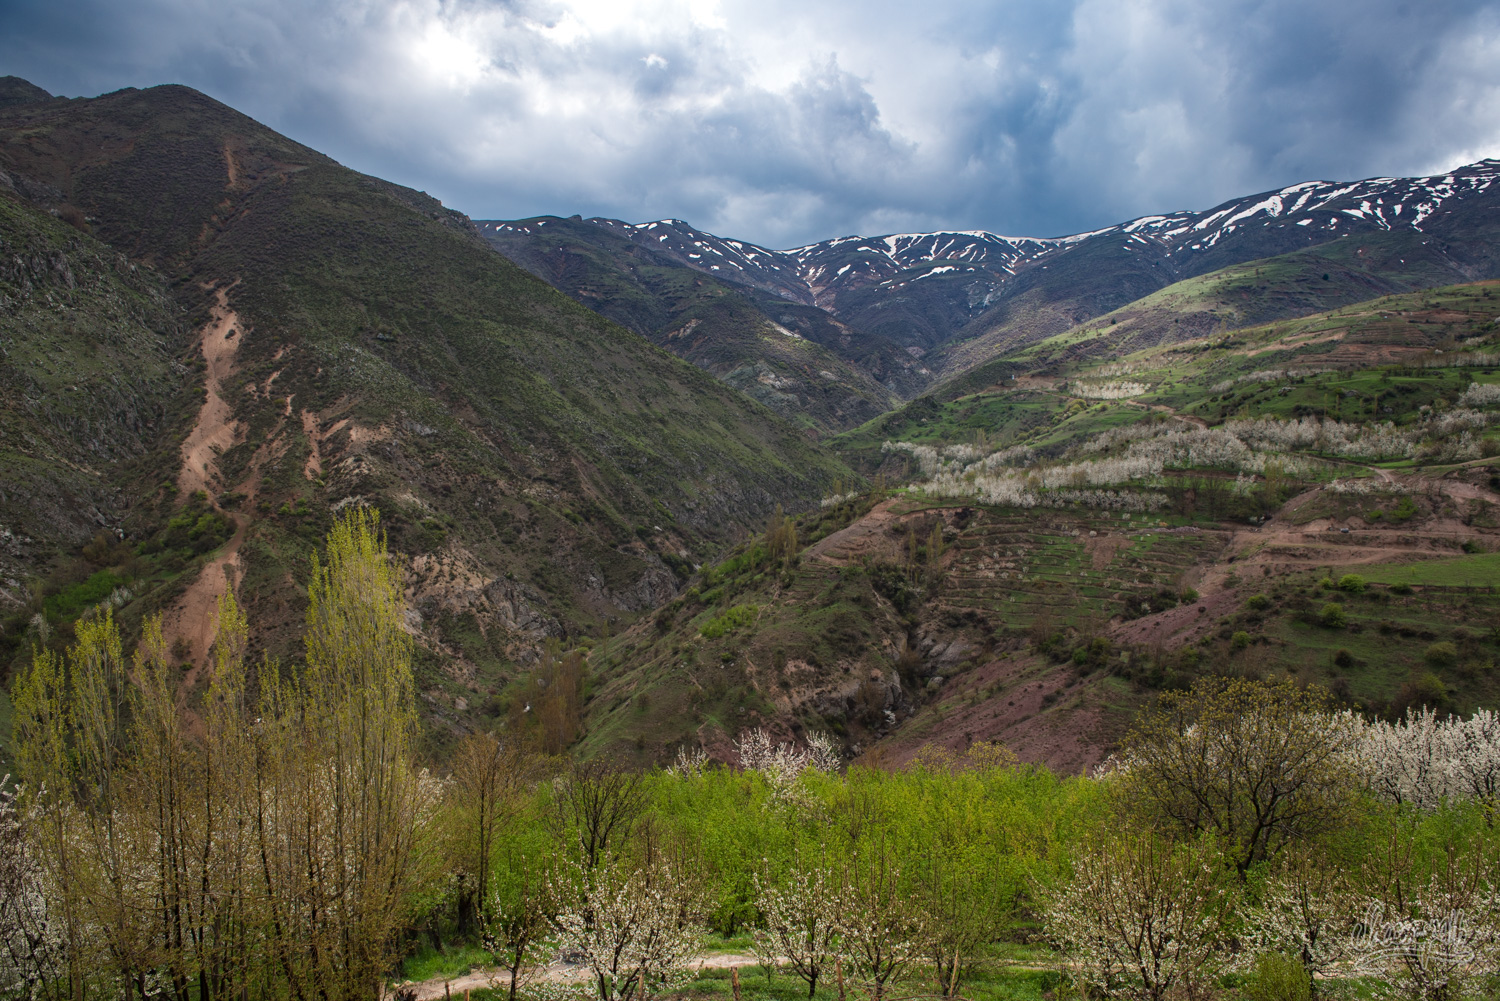 Alamut, vallée des assassins, Iran